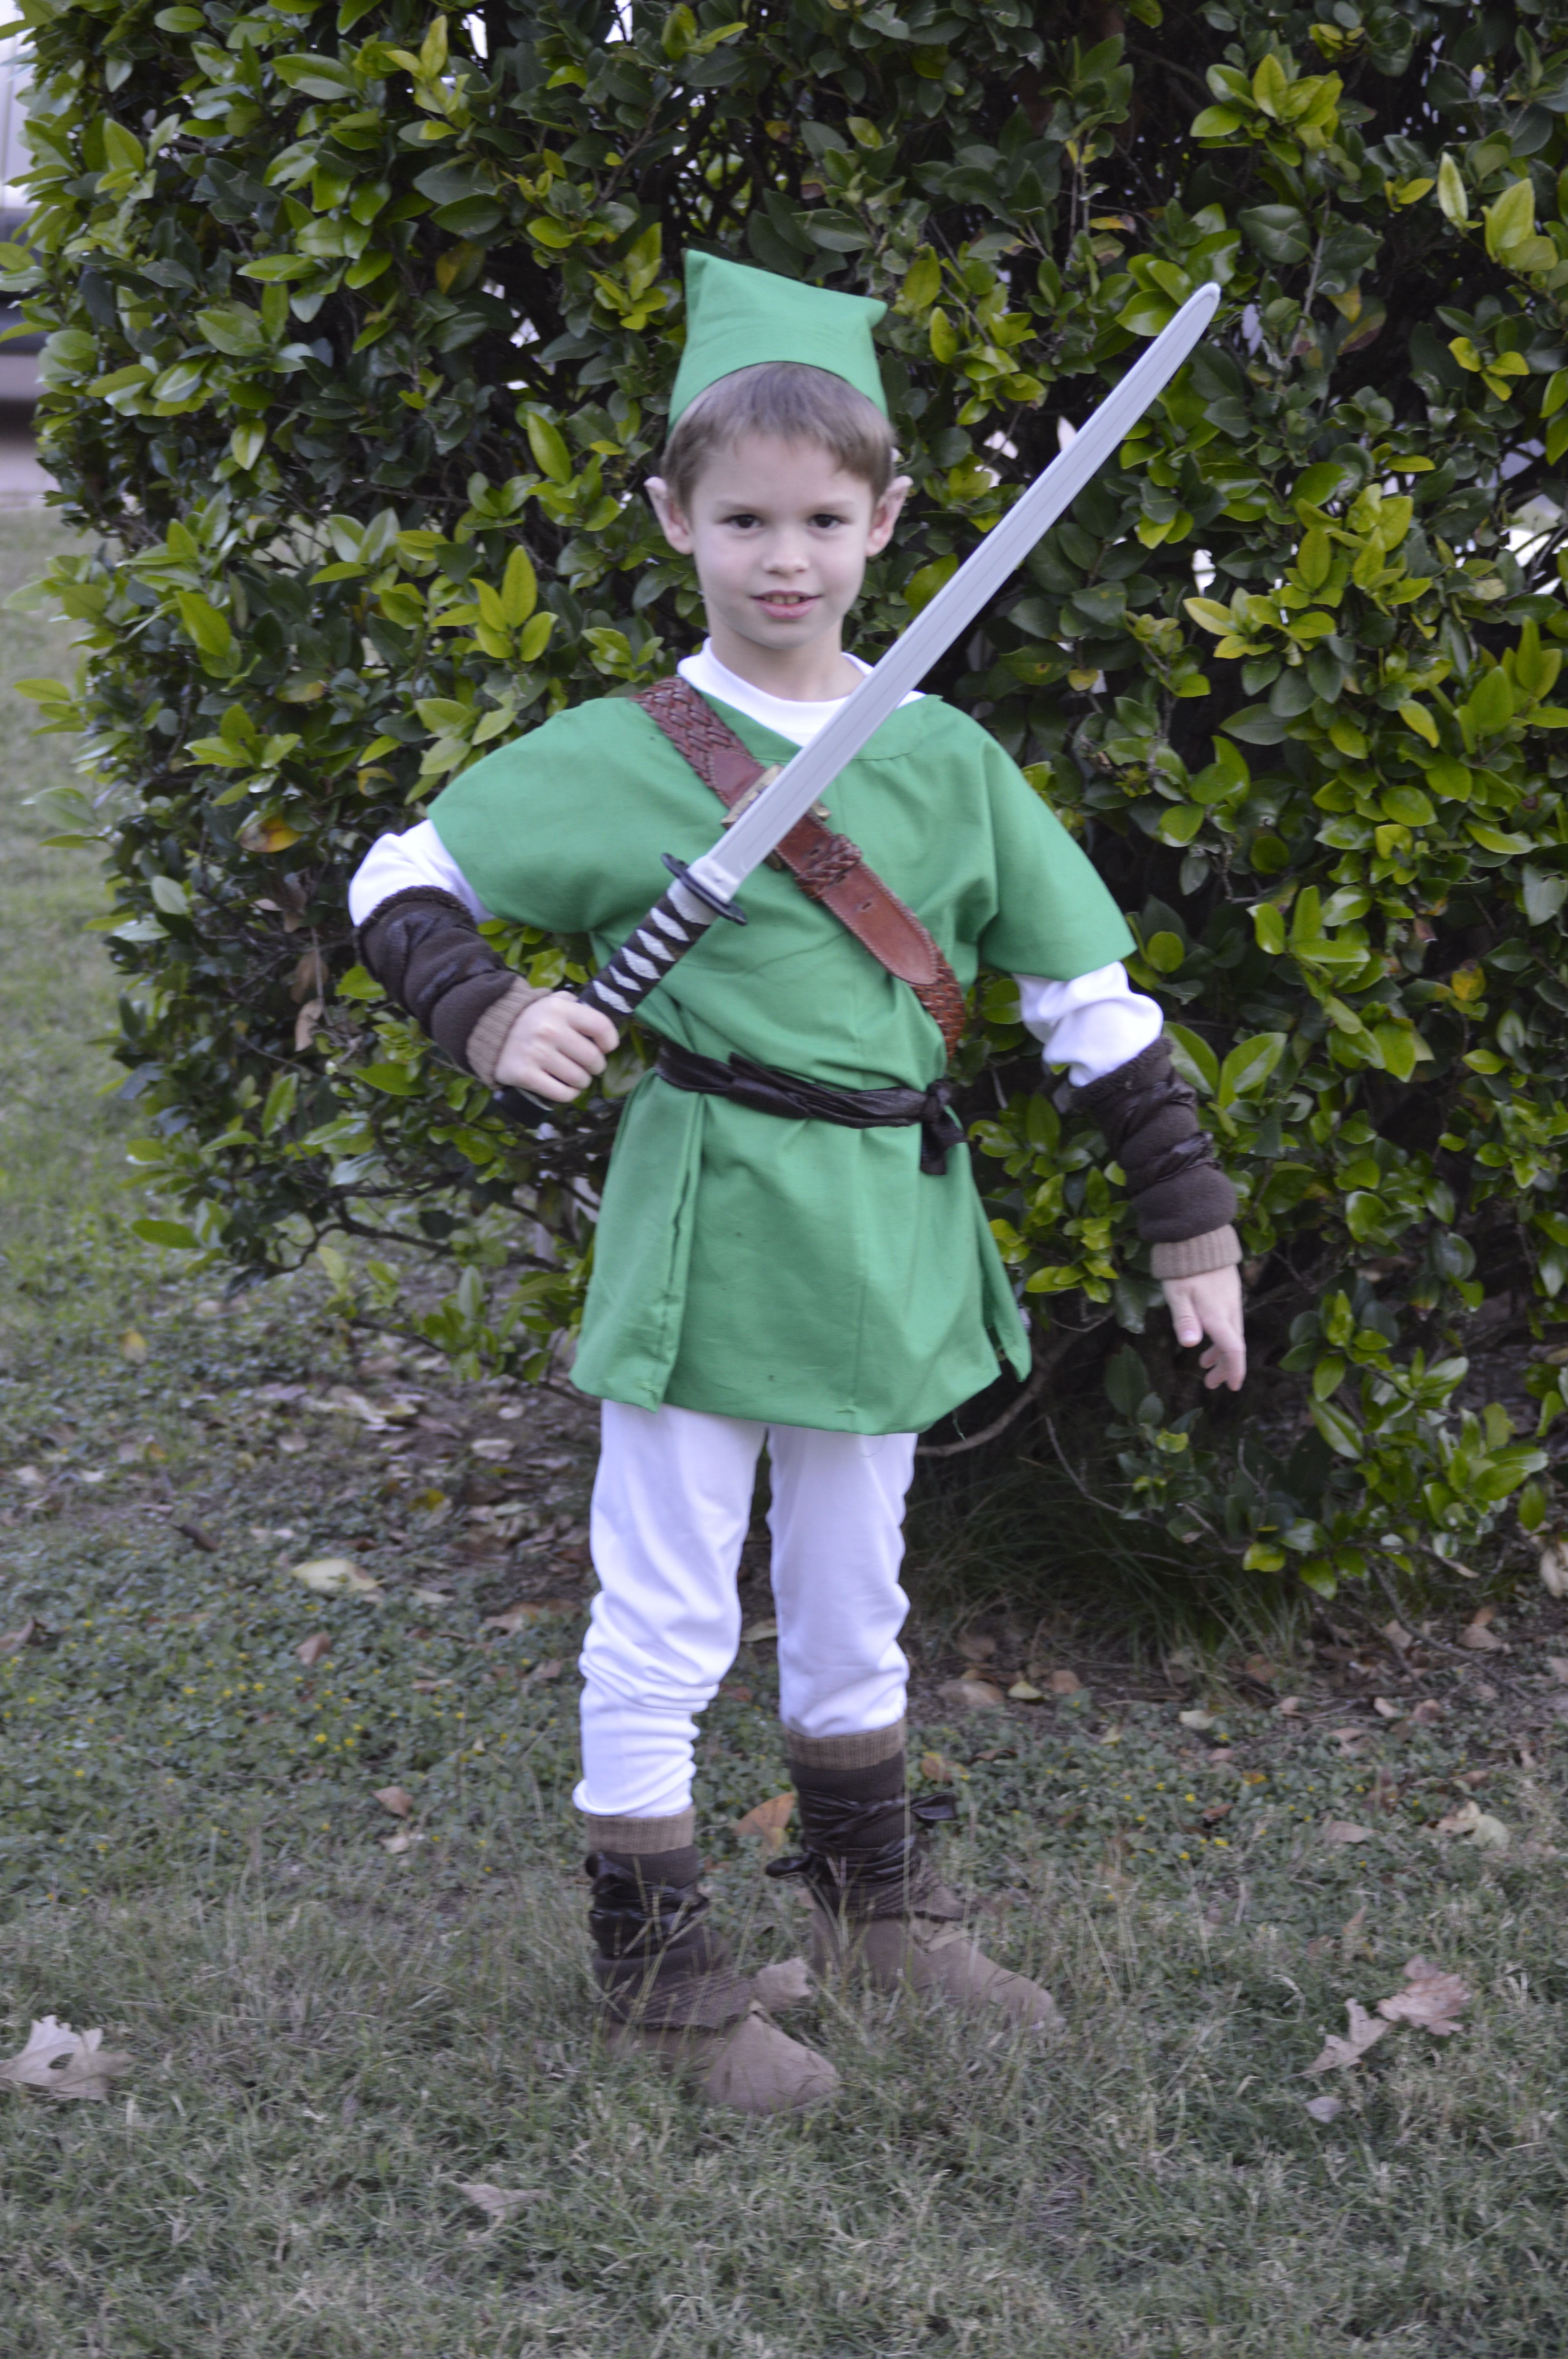 Homemade Link from The Legend of Zelda Halloween costume - used clear tape to point his ears.  sc 1 st  Pinterest & Homemade Link from The Legend of Zelda Halloween costume - used ...